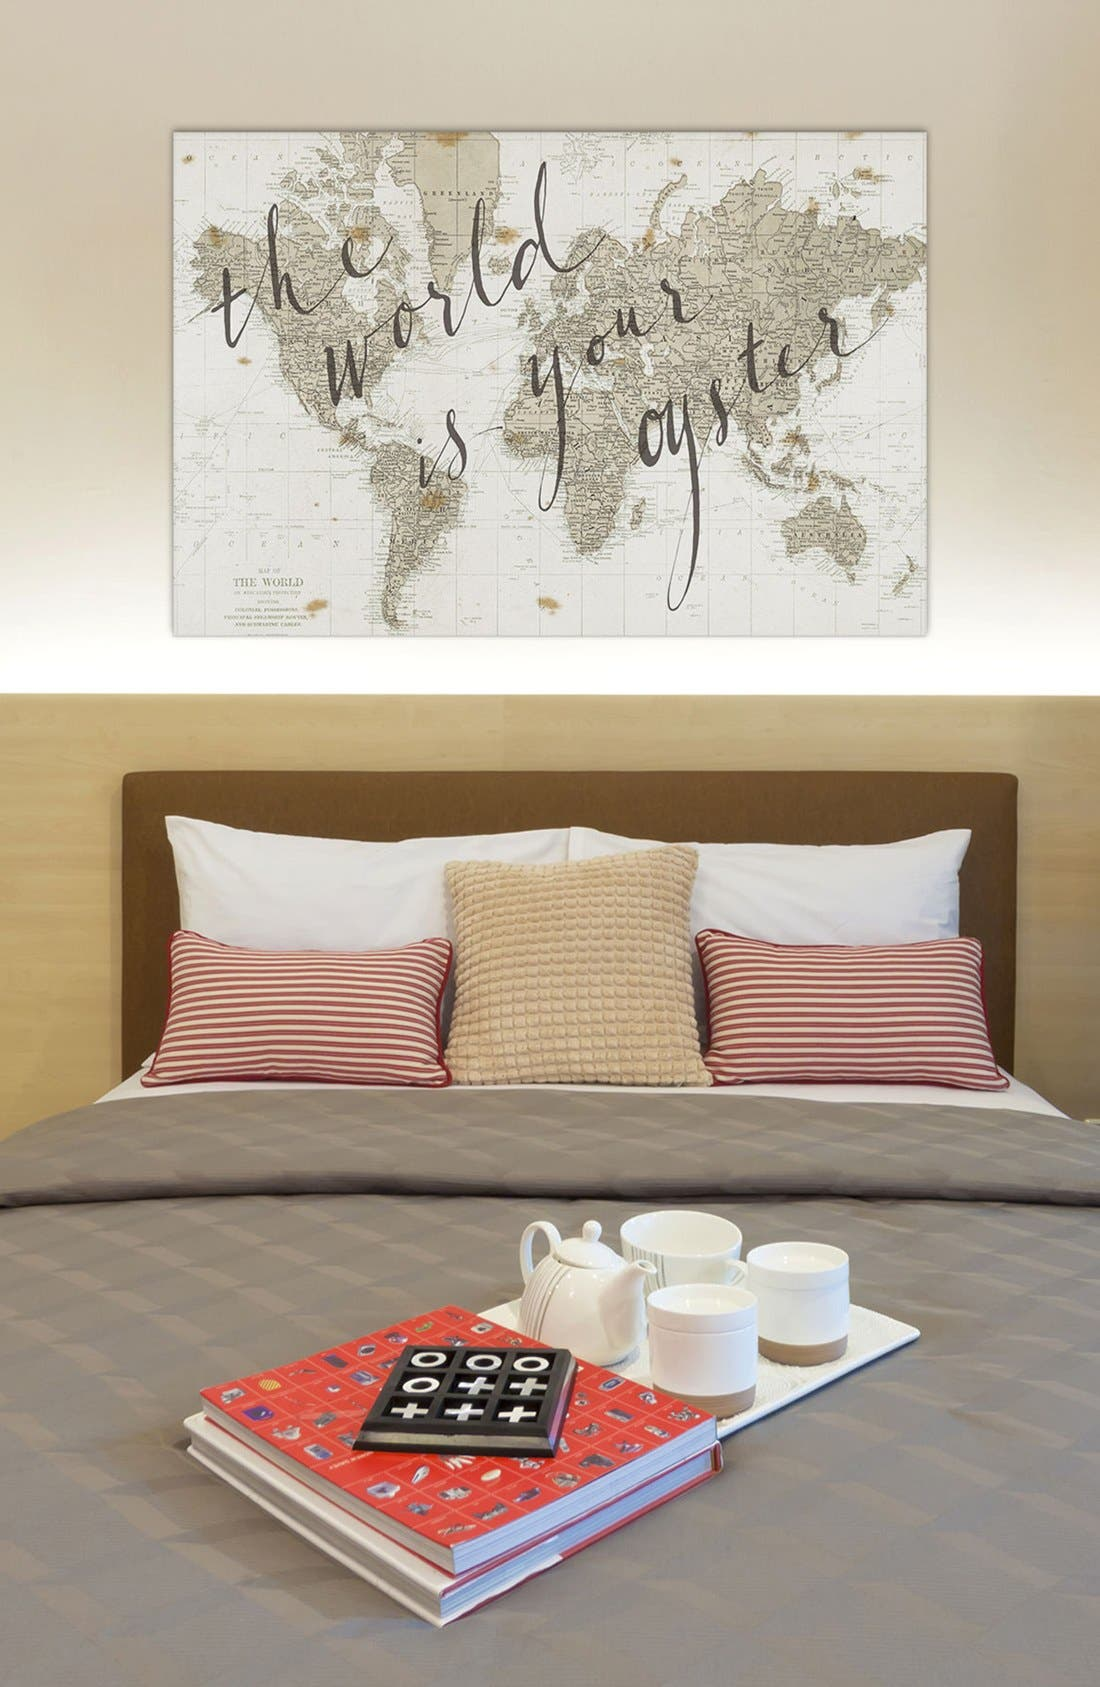 'The World is Your Oyster' Giclée Print Canvas Art,                             Alternate thumbnail 2, color,                             100